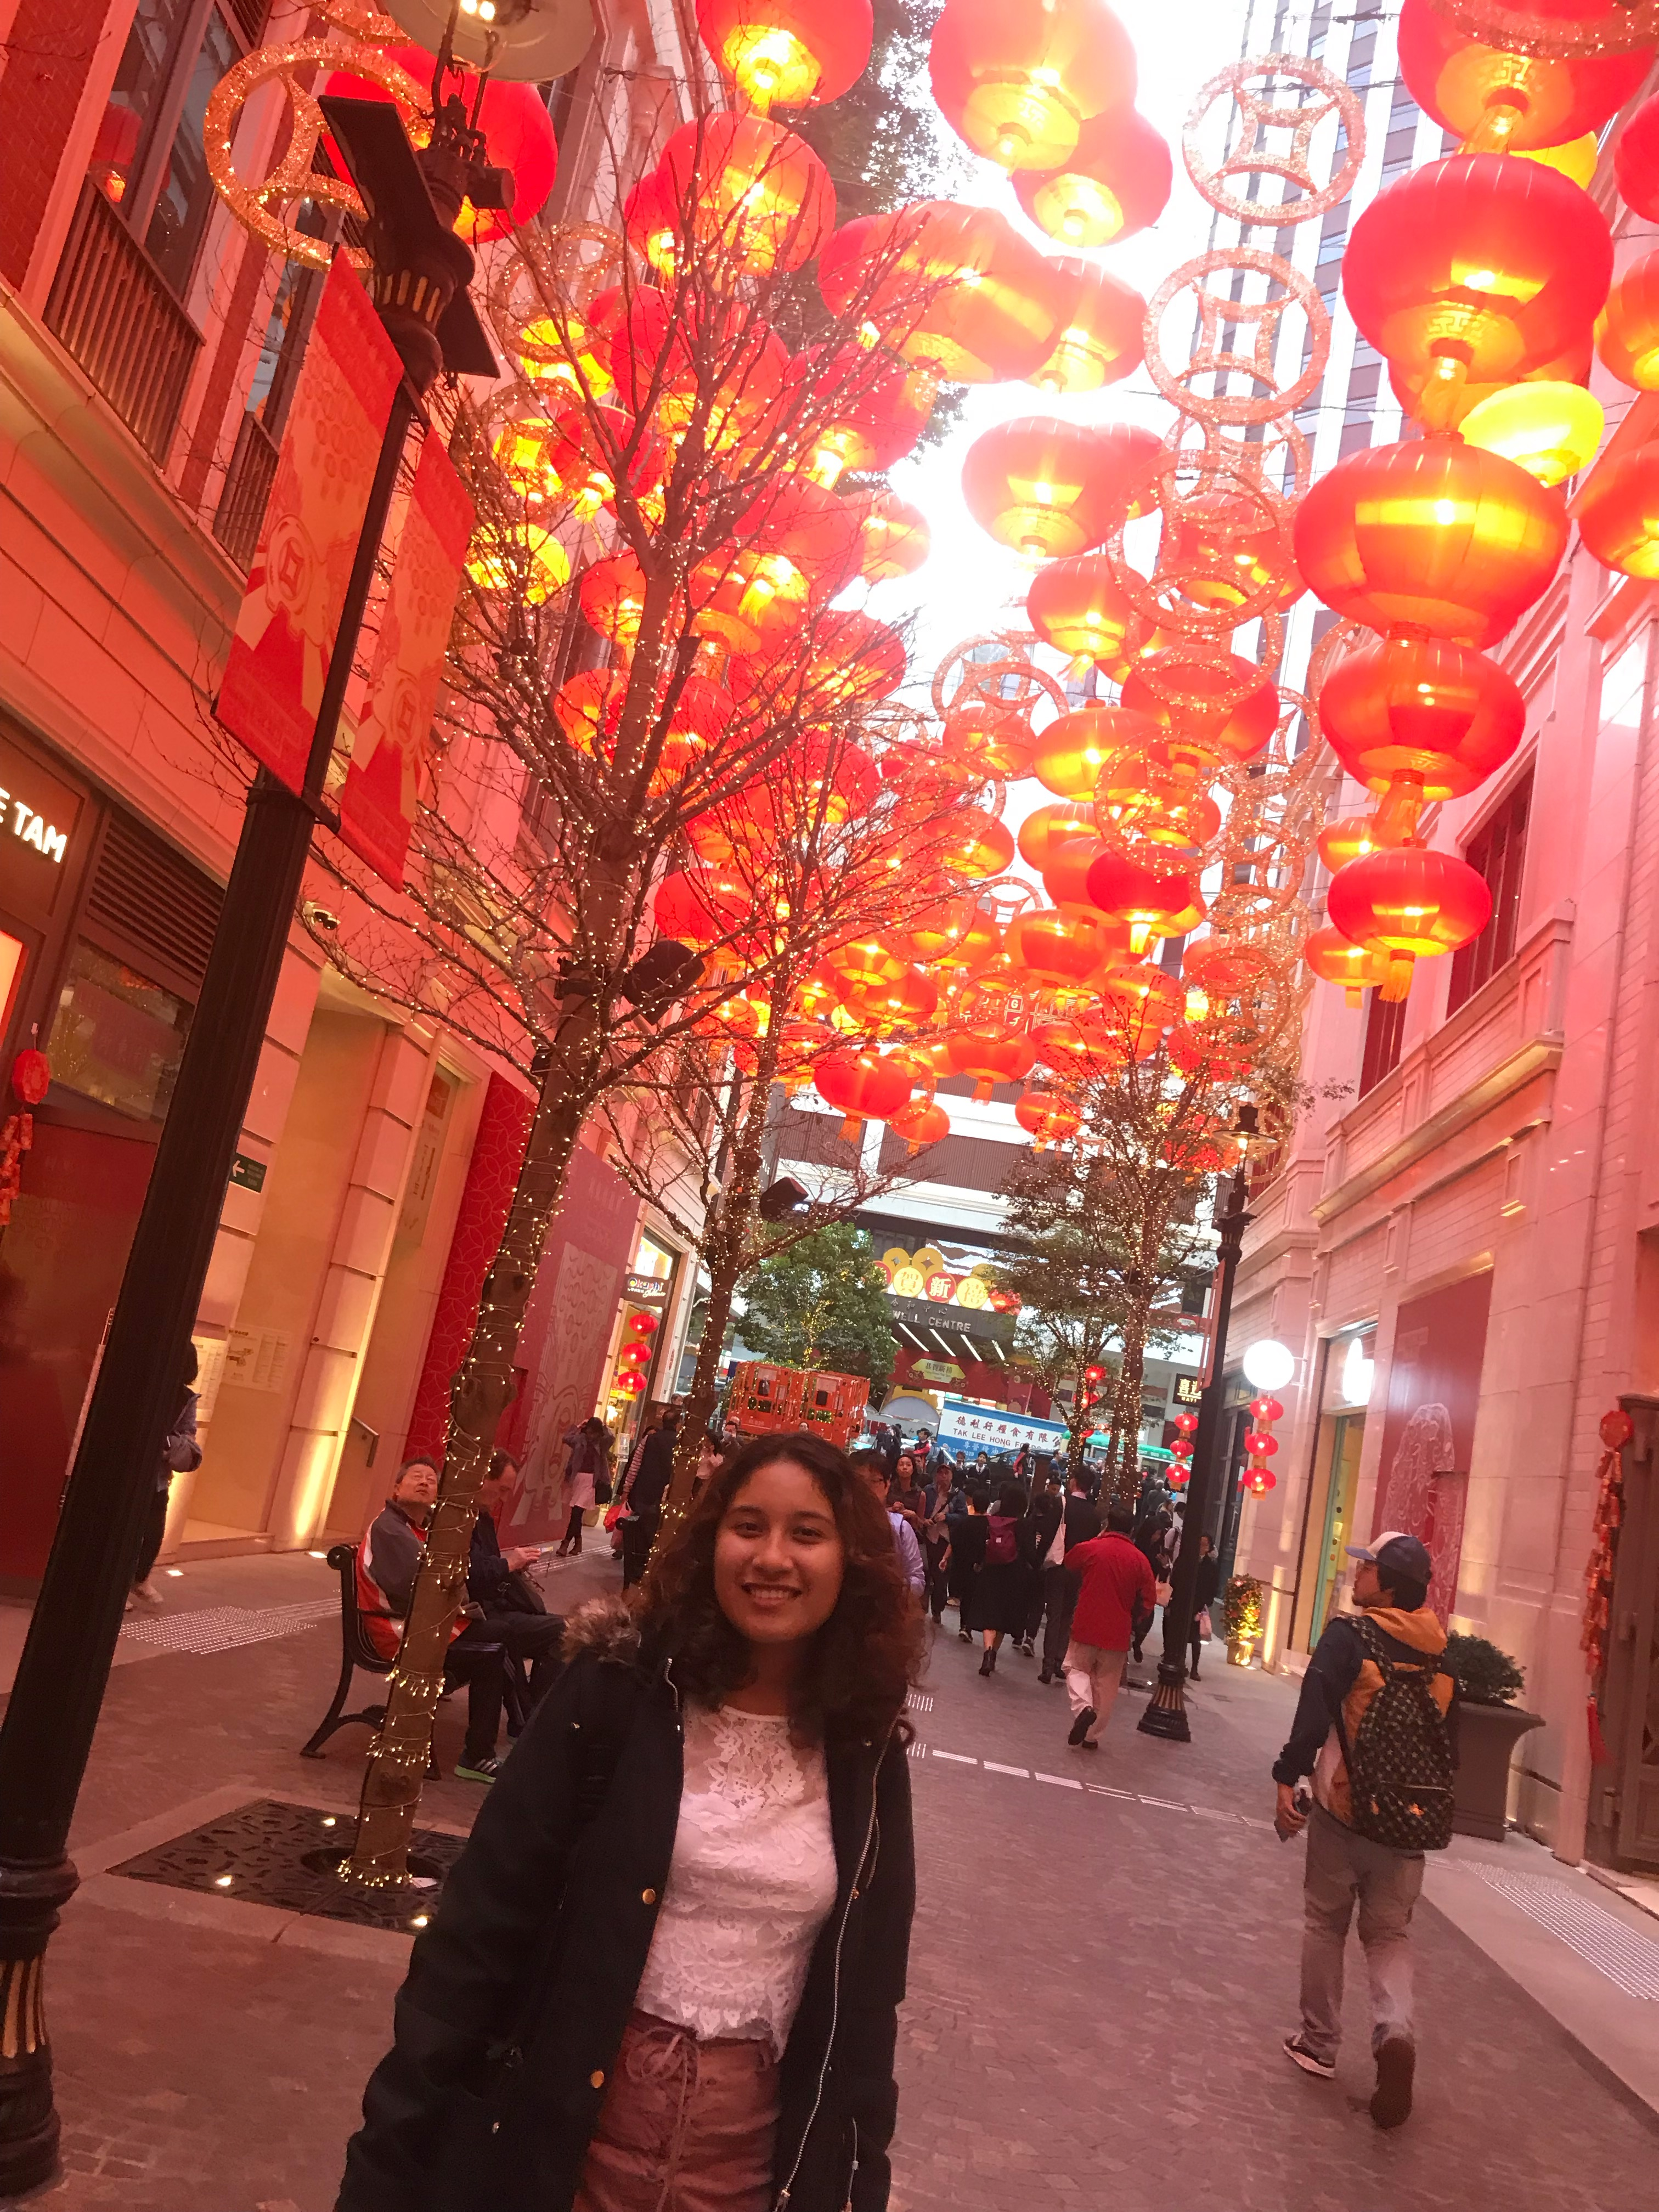 Chinese New Year  My roommate and I were exploring Hong Kong when we came out from the station in a neighborhood called Wan Chai. The street was filled with red decorations to welcome Chinese New Year